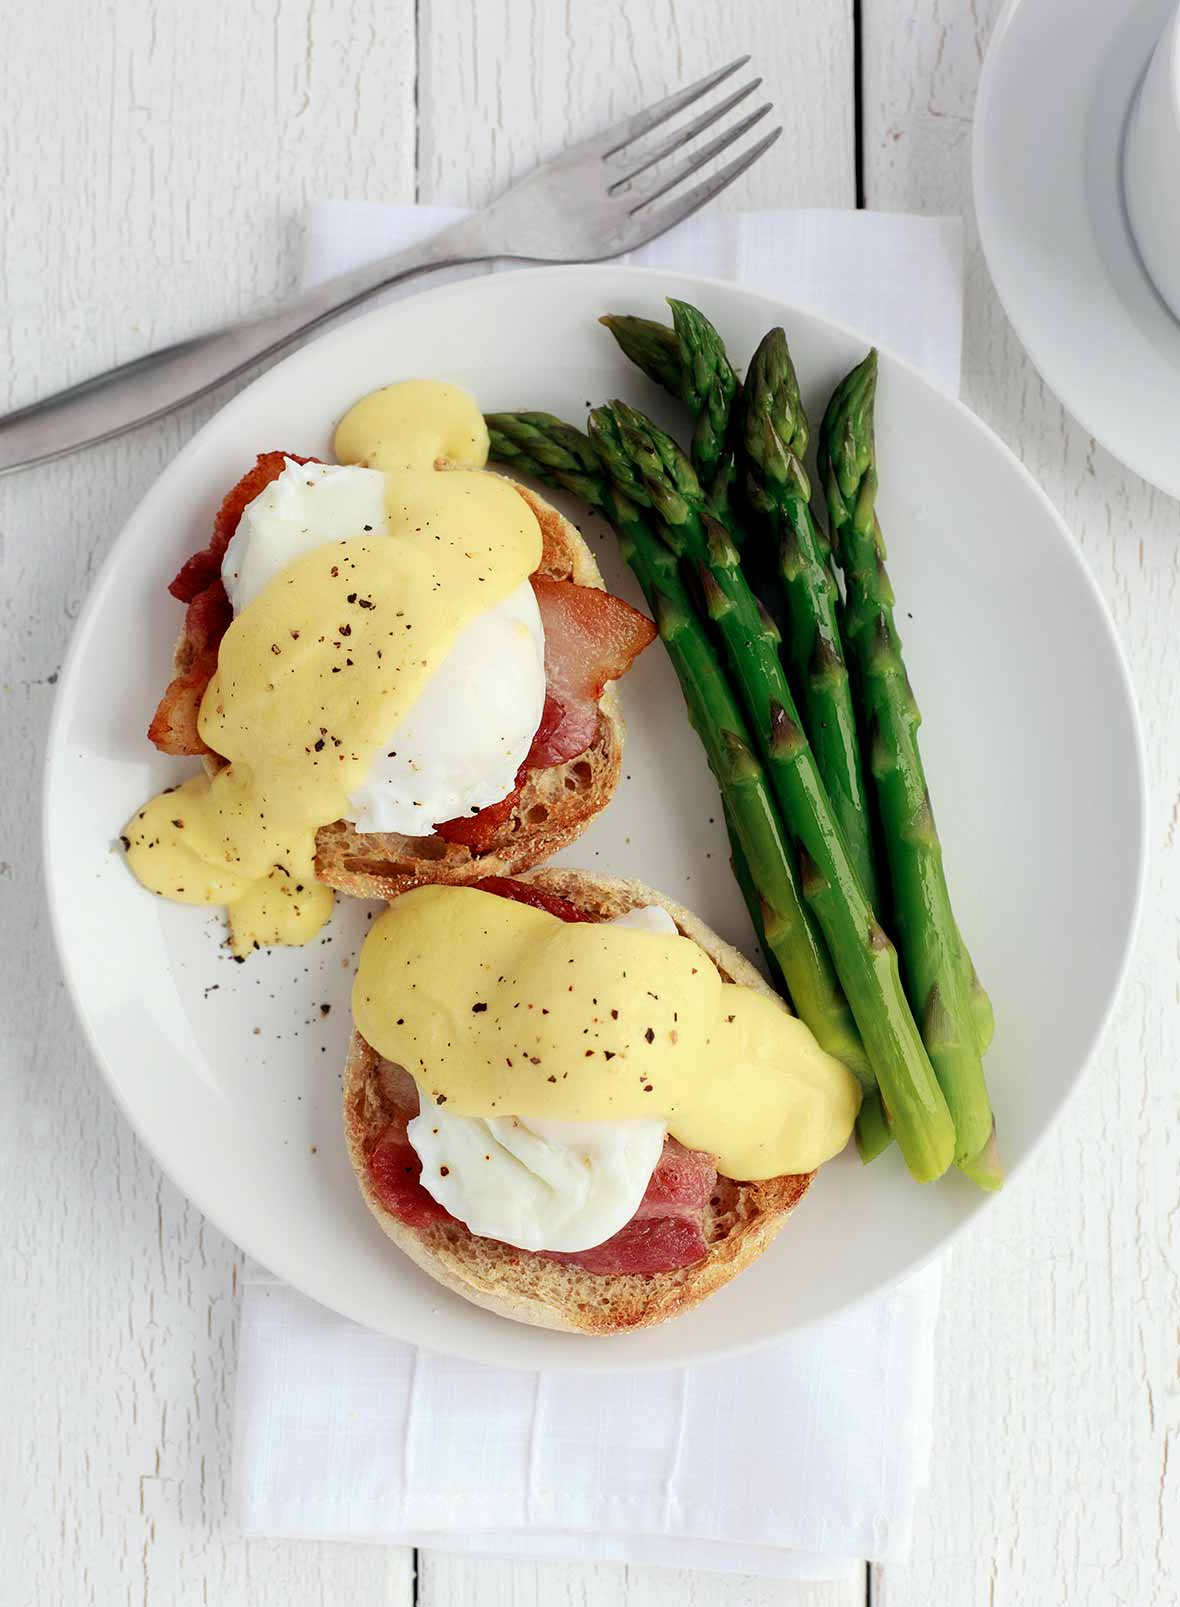 Two Julia Child's eggs Benedict on a white plate with a side of asparagus.